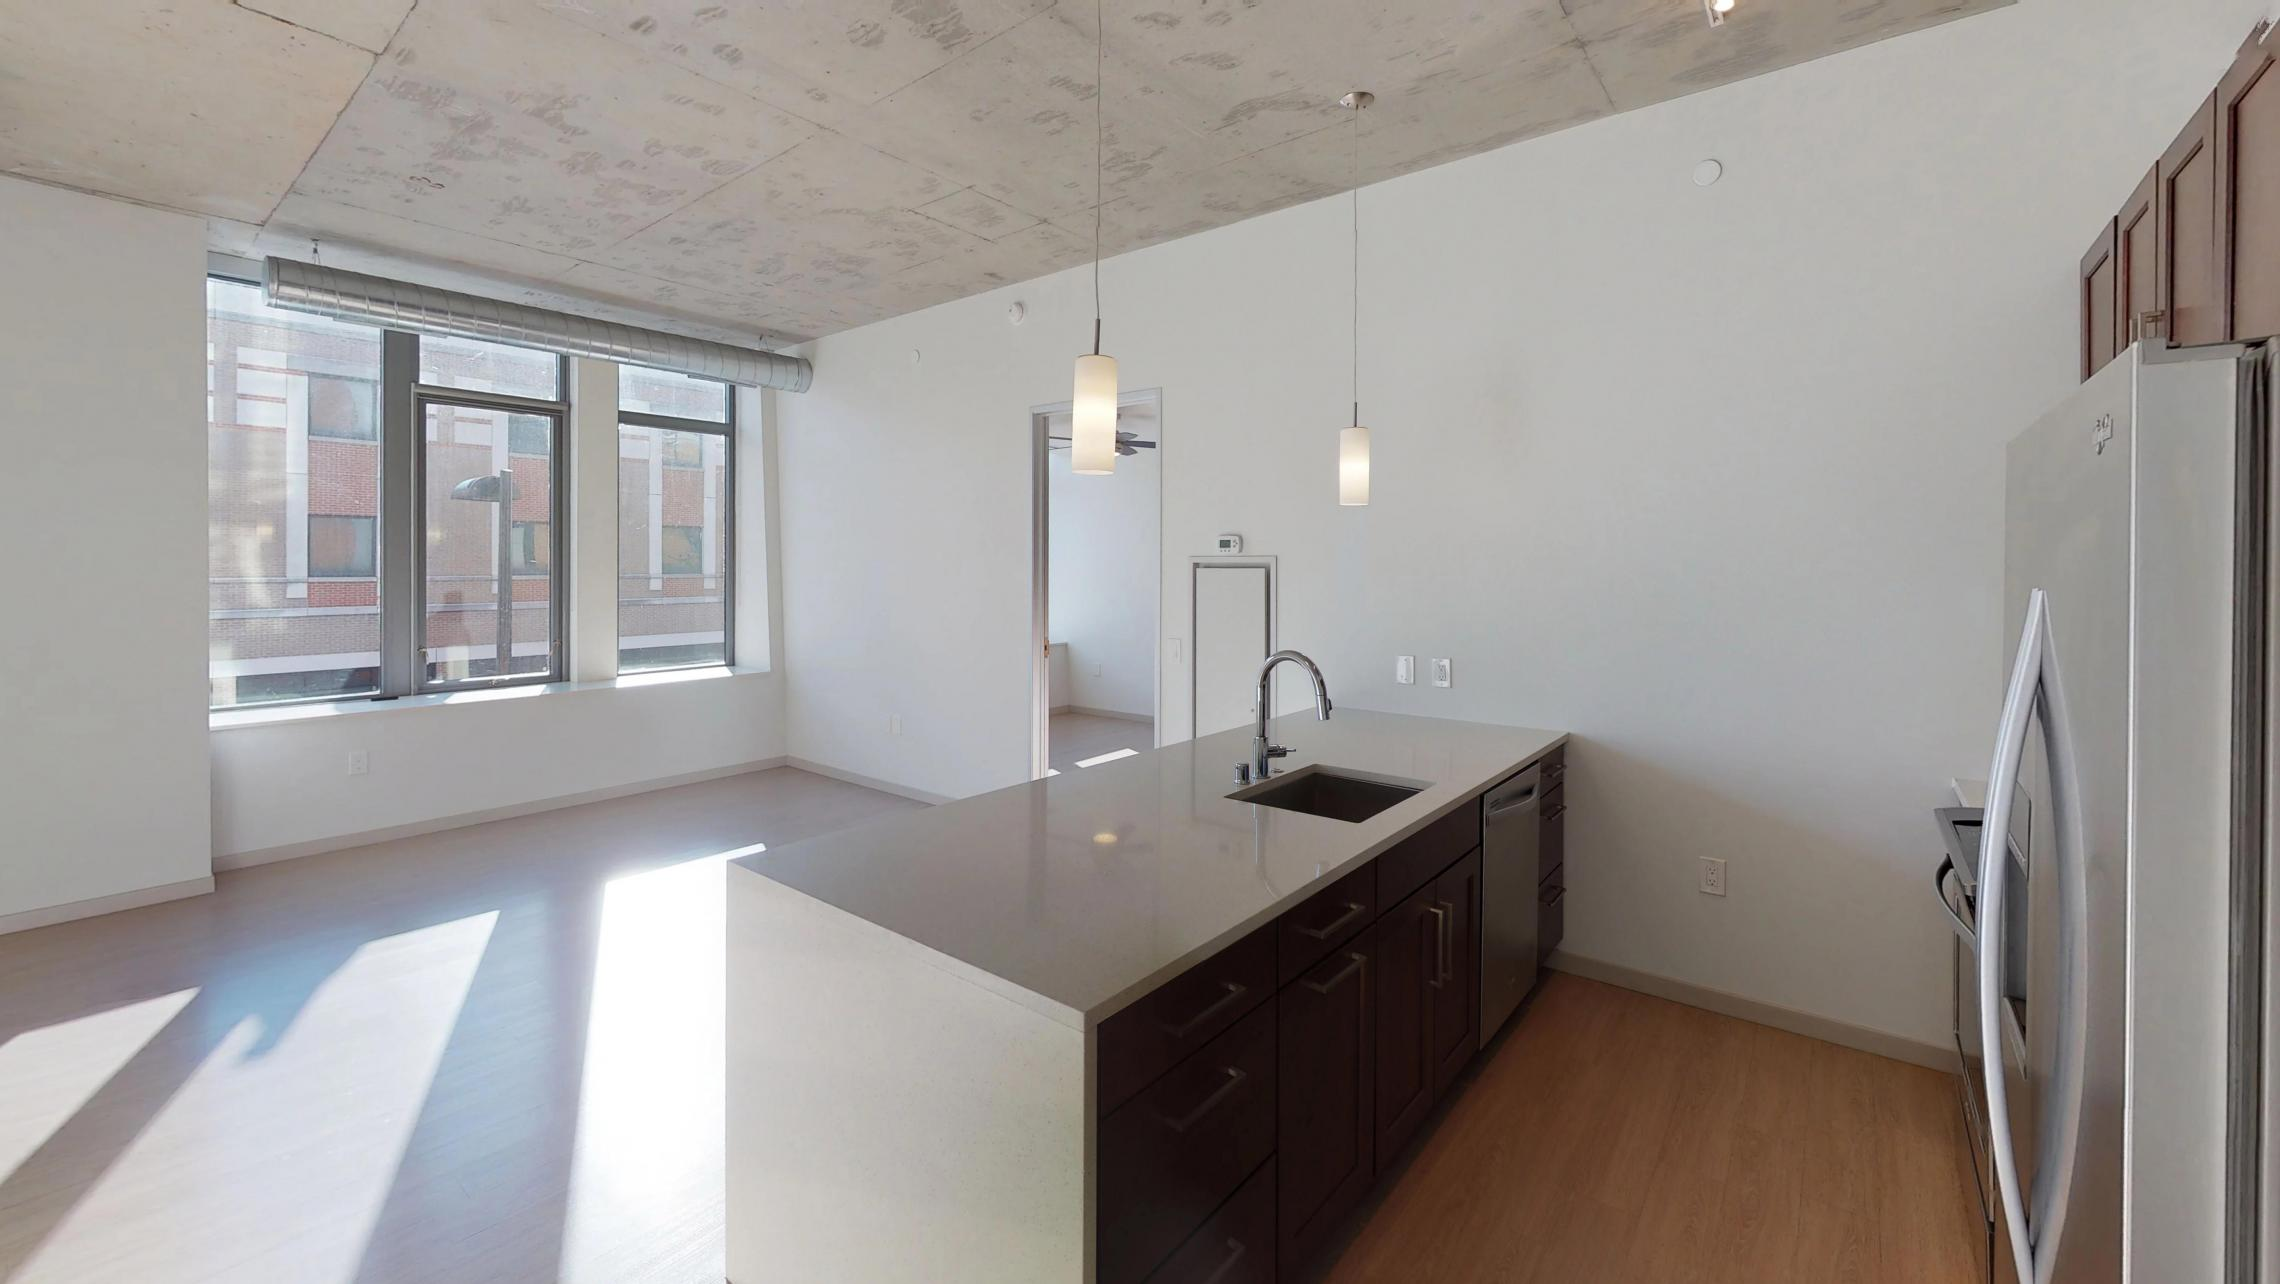 The-Pressman-Apartments-Upscale-Club-room-Modern-Luxury-Downtown-Madison-High-Rise-Lifestyle-Capitol-Square-One-Bedroom-Views-Lake-Office-Conference